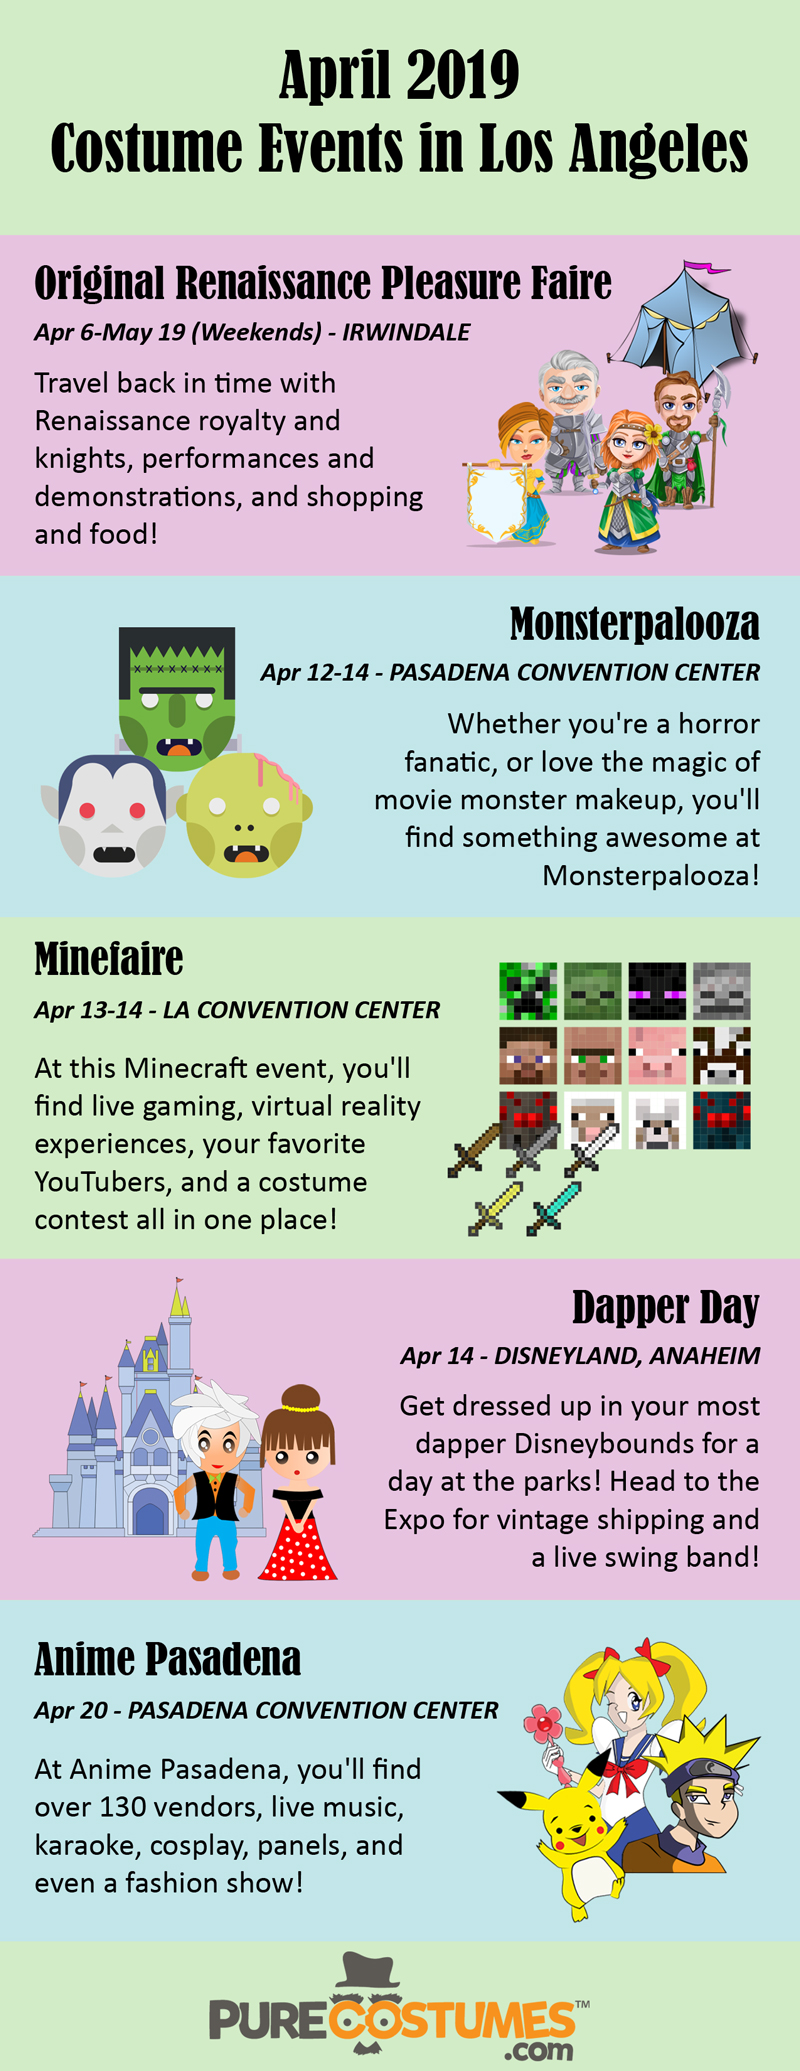 infographic Los Angeles Costume Events April 2019